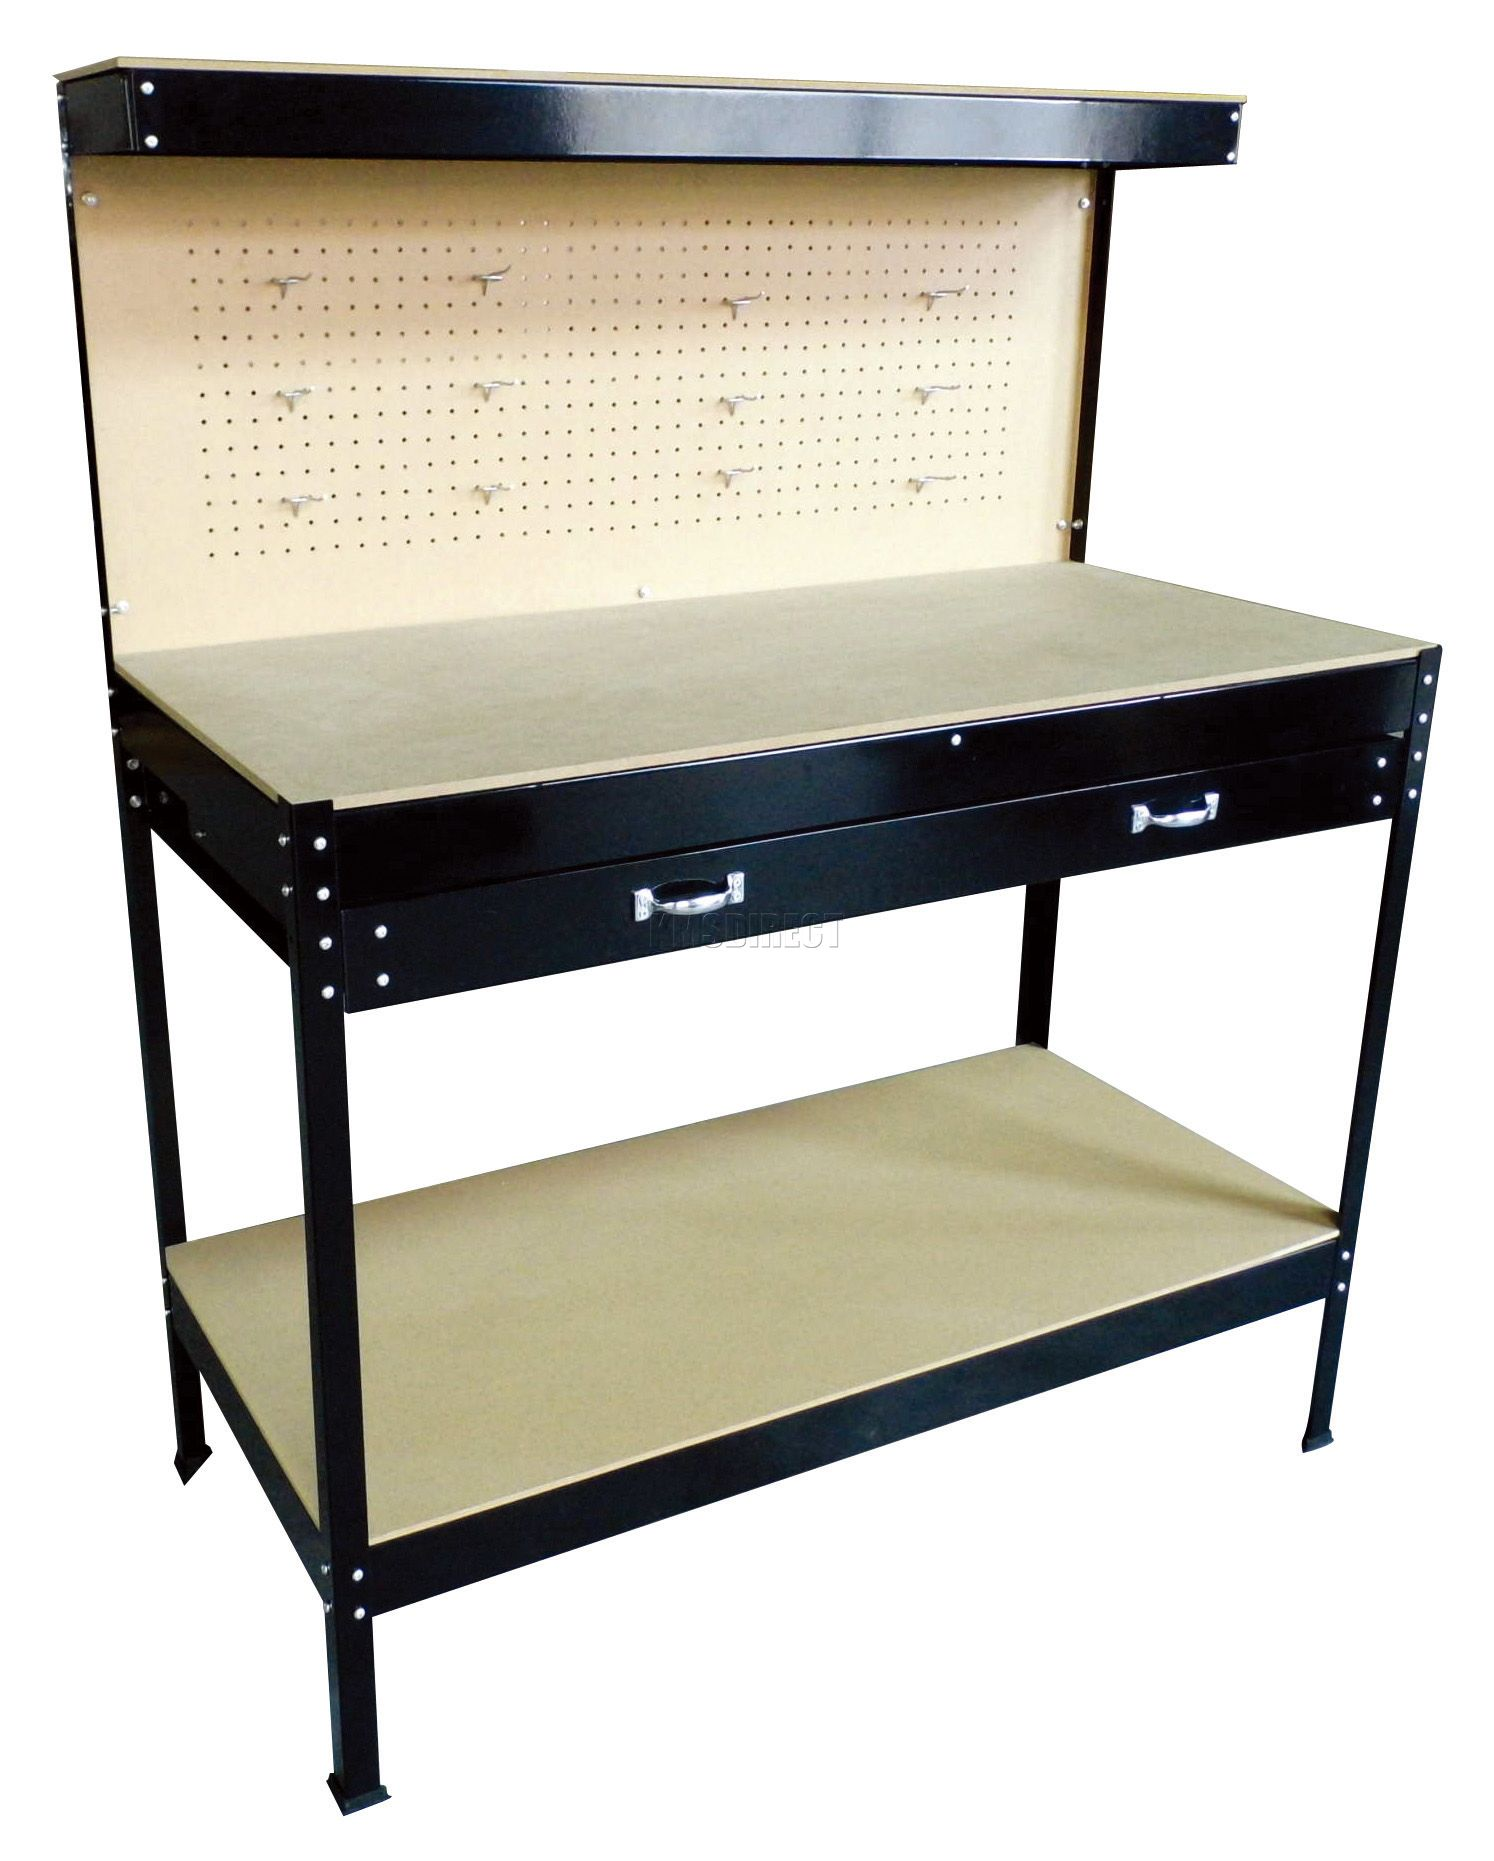 Black Steel Garage Toolbox Workbench Storage Pegboard Shelf Workshop Station Ebay